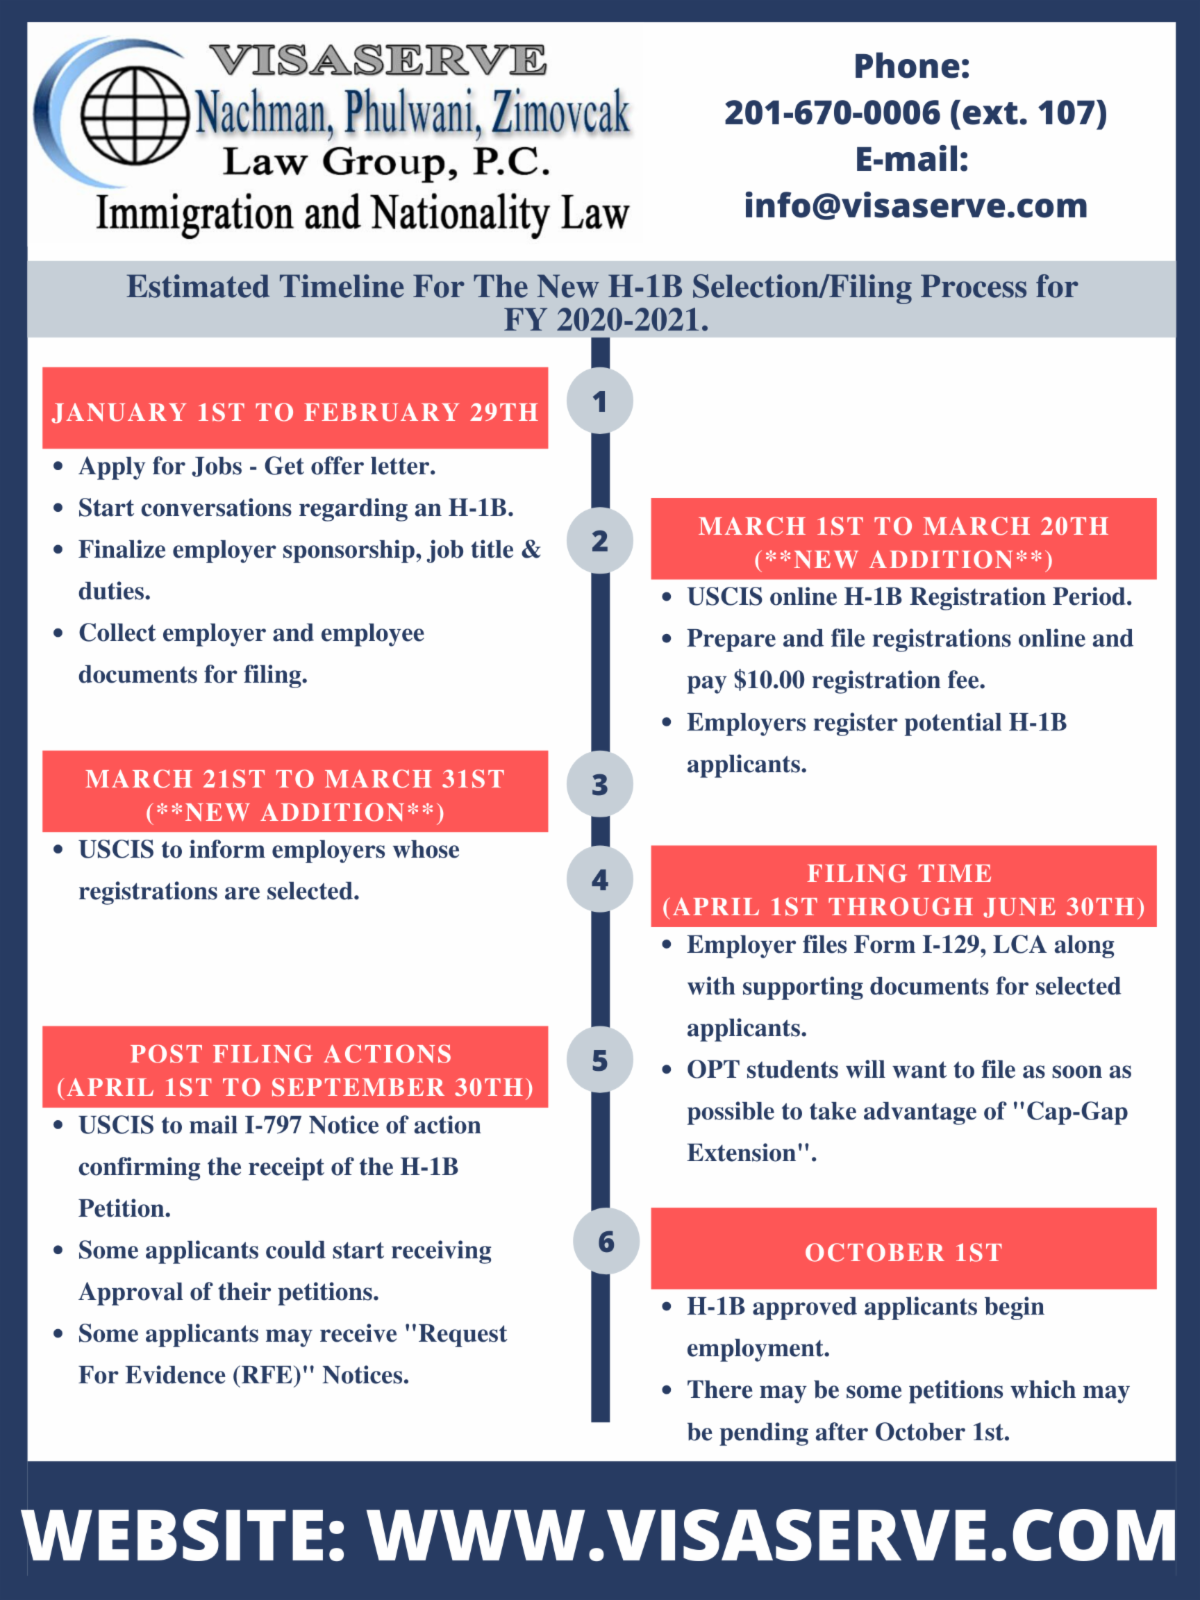 IMMIGRATION LAW (US AND CANADIAN) NEWS AND UPDATES NEW H